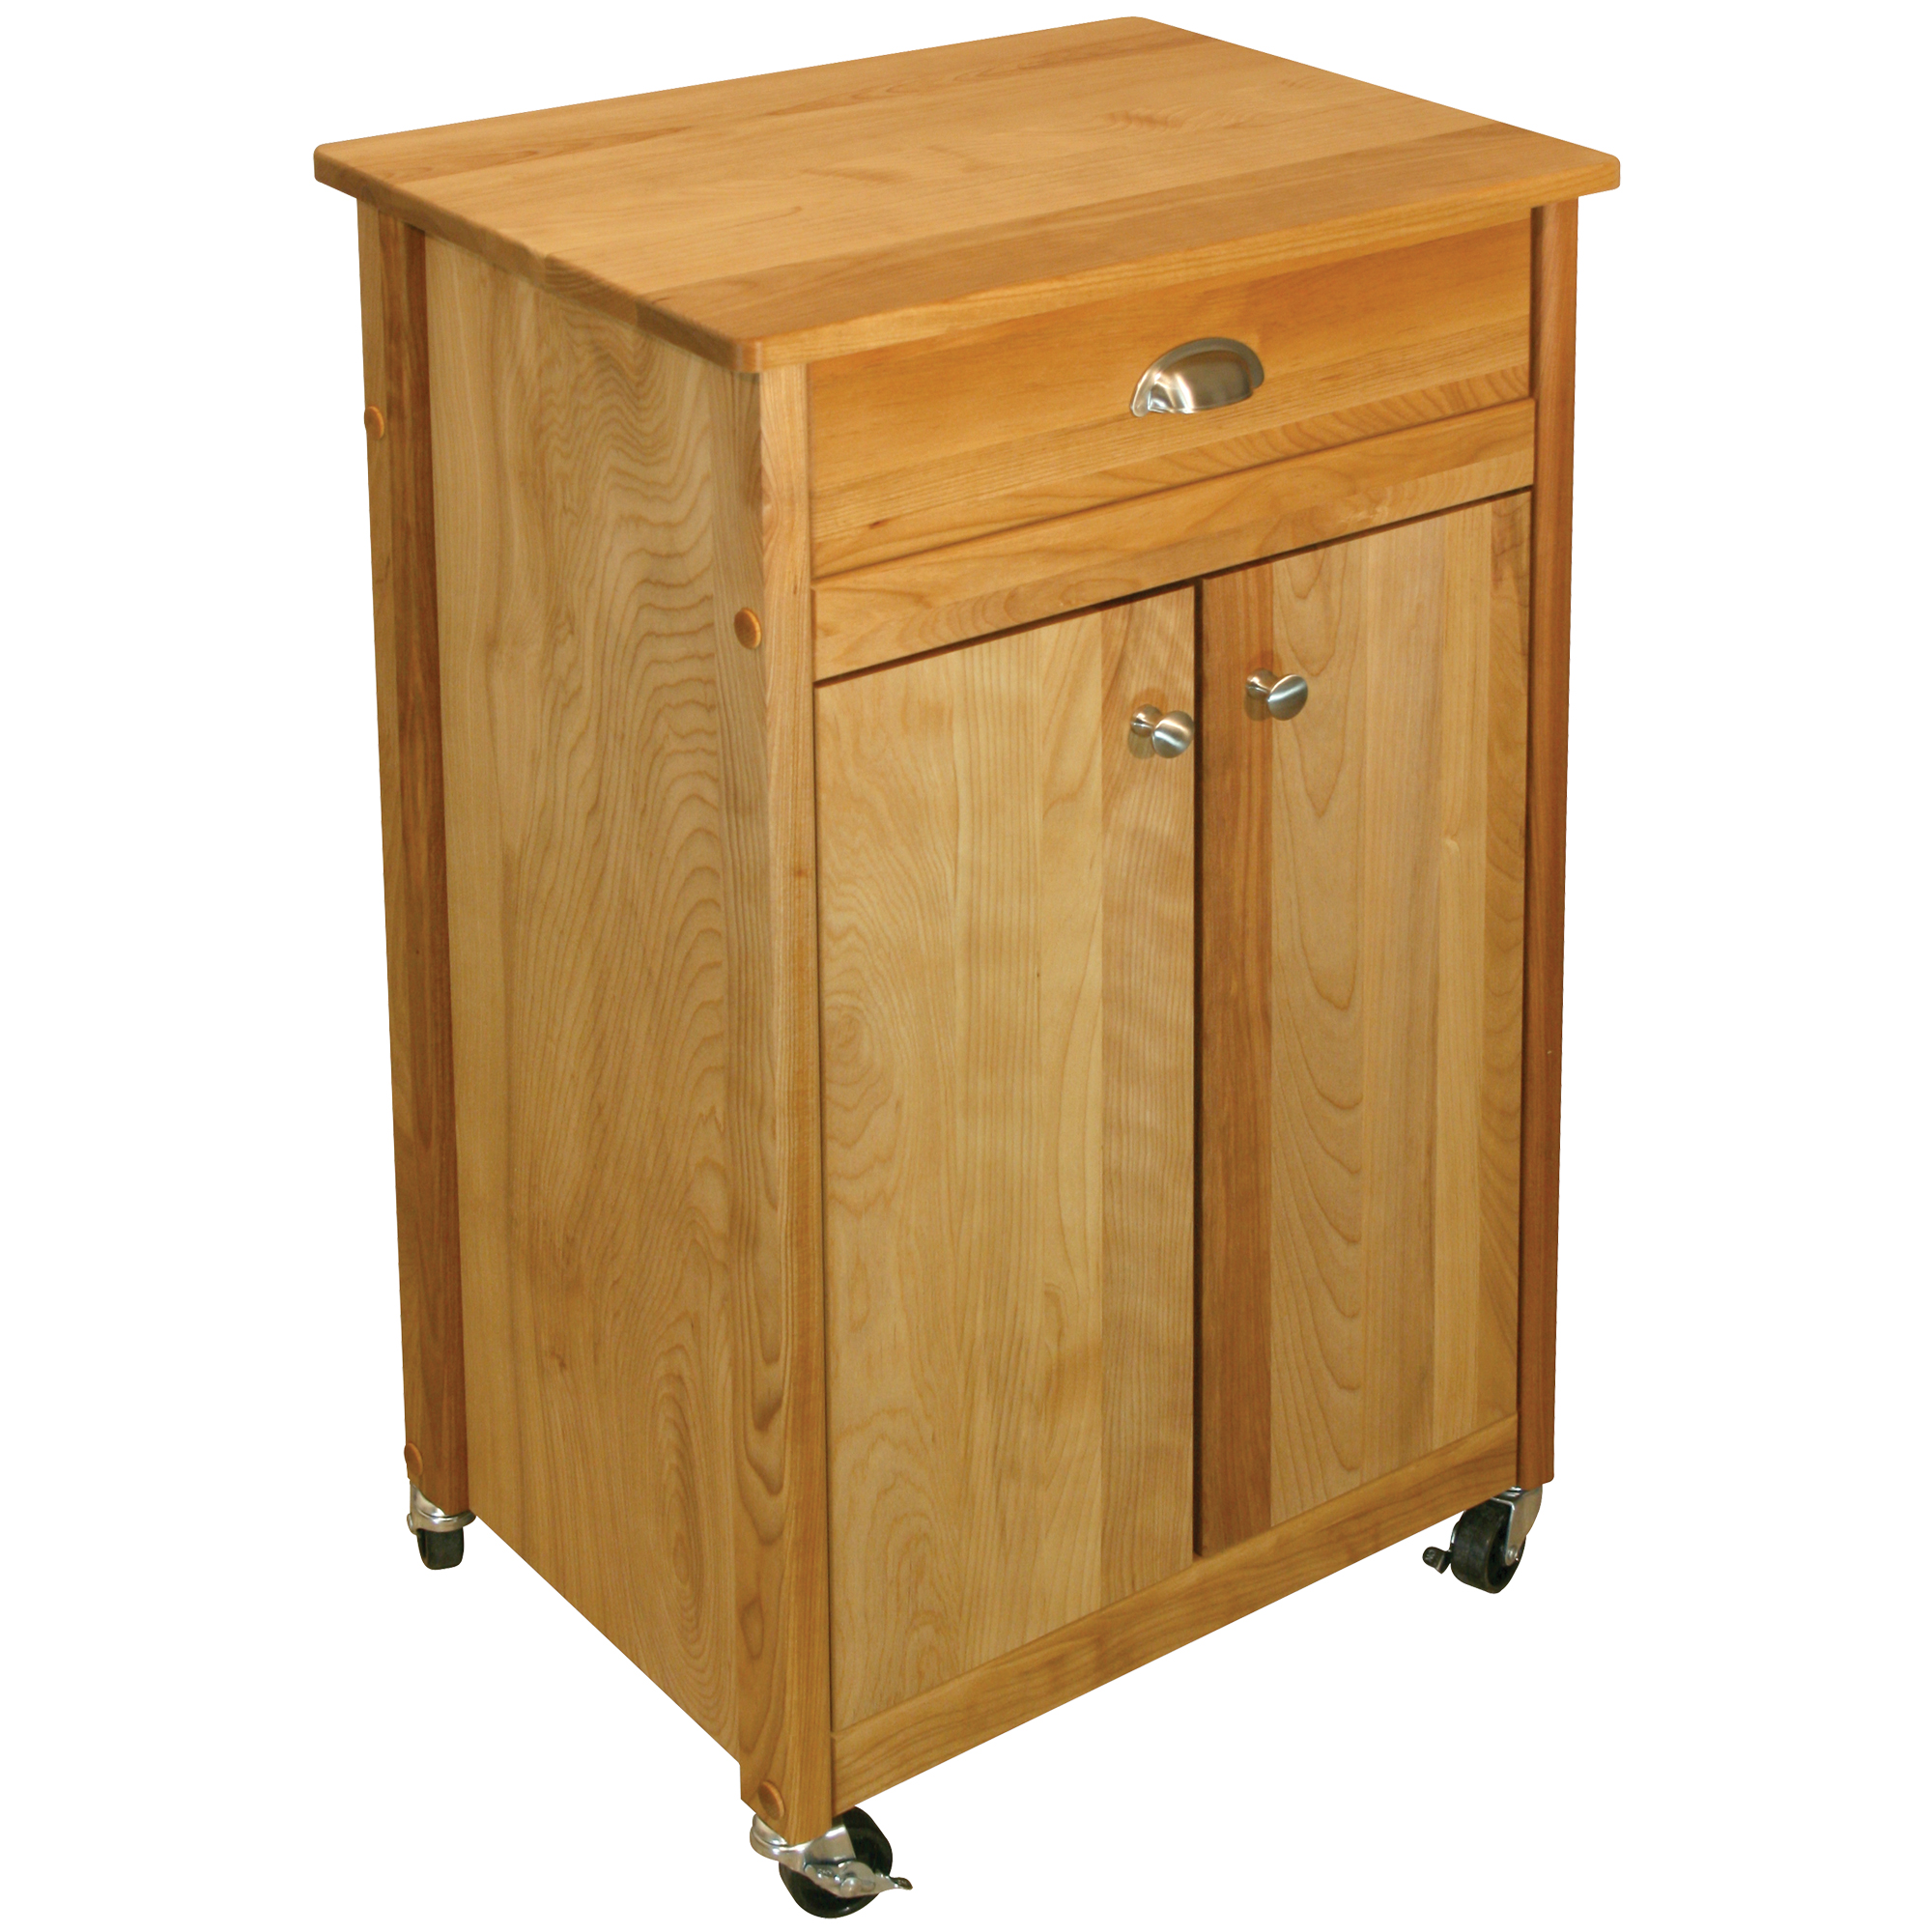 Catskill Deluxe Economy Butcher Block Cart – Best Value Kitchen Cart